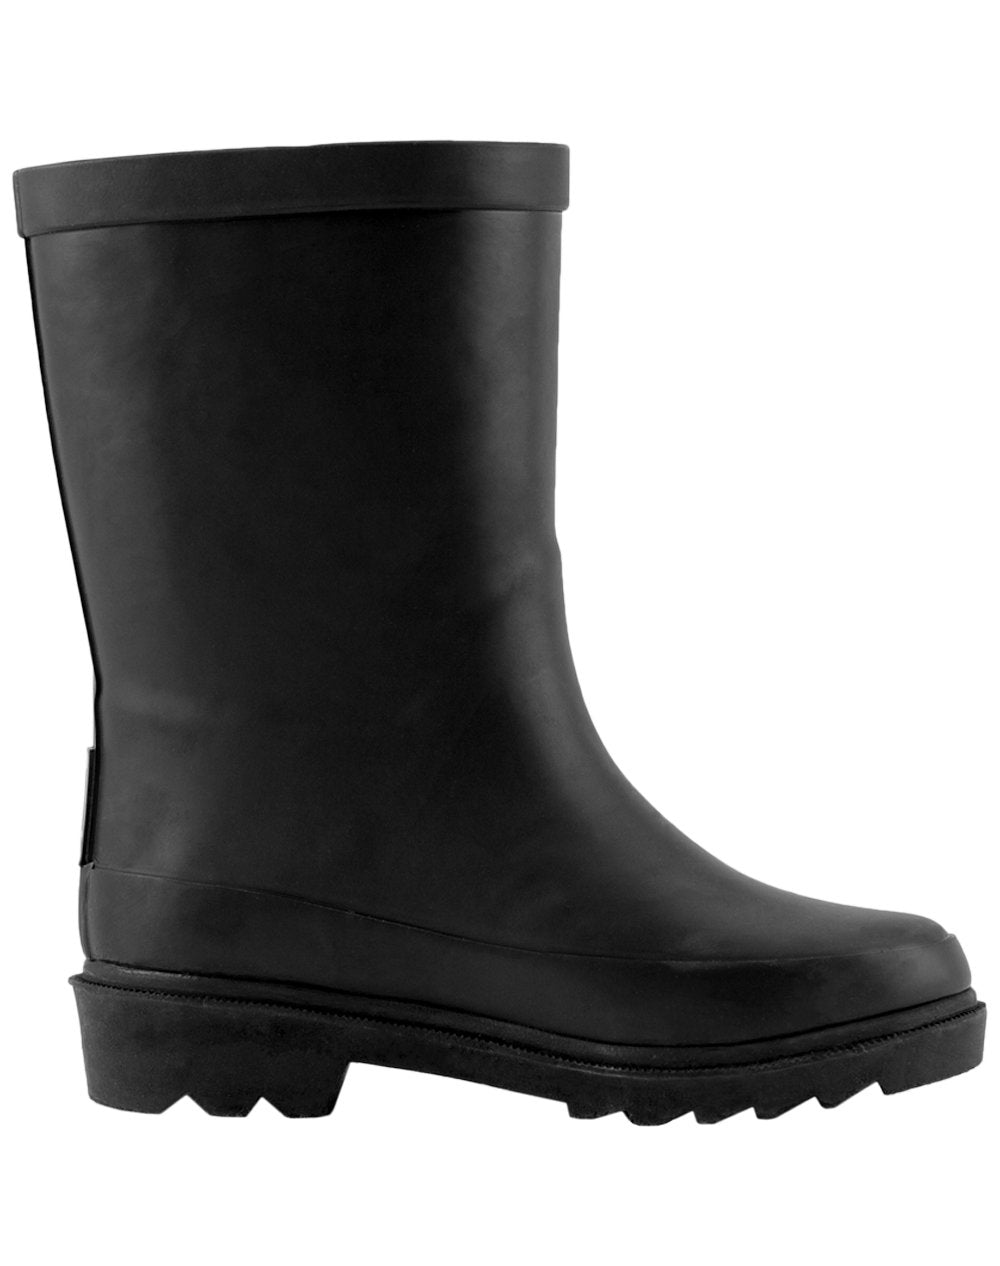 Midnight Black Buckle Rubber Rain Boots